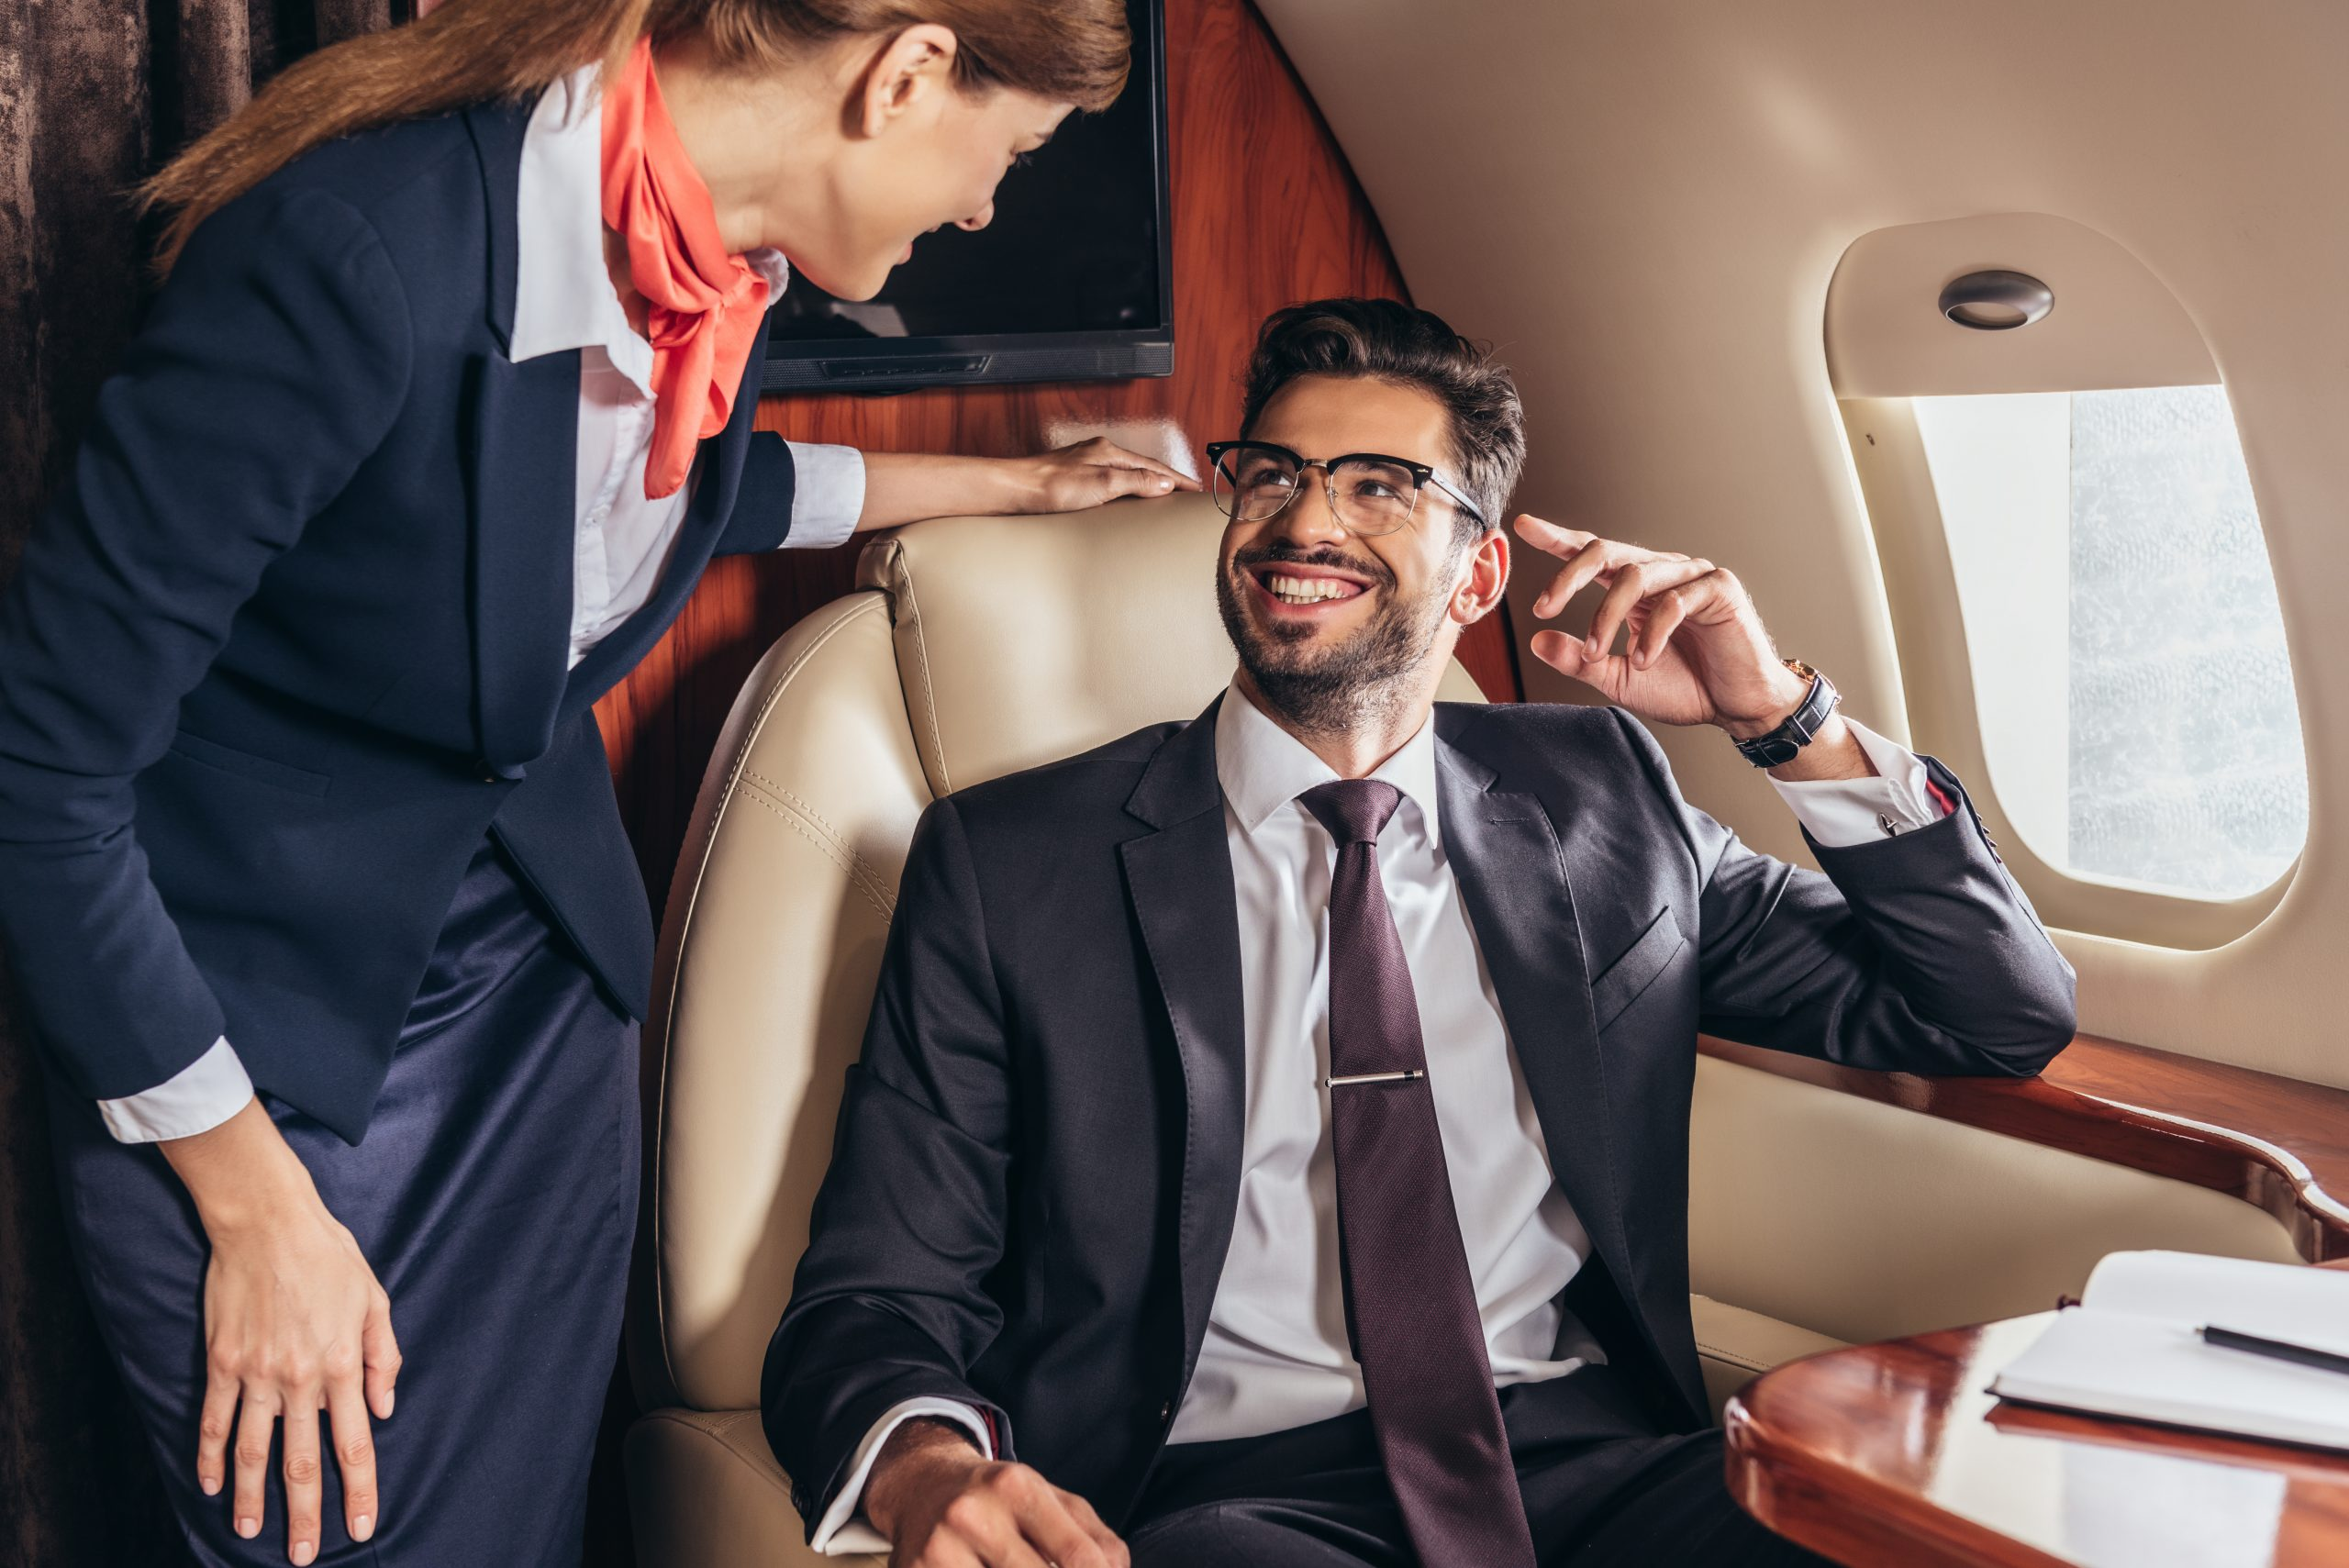 smiling businessman in suit looking at flight attendant in private plane